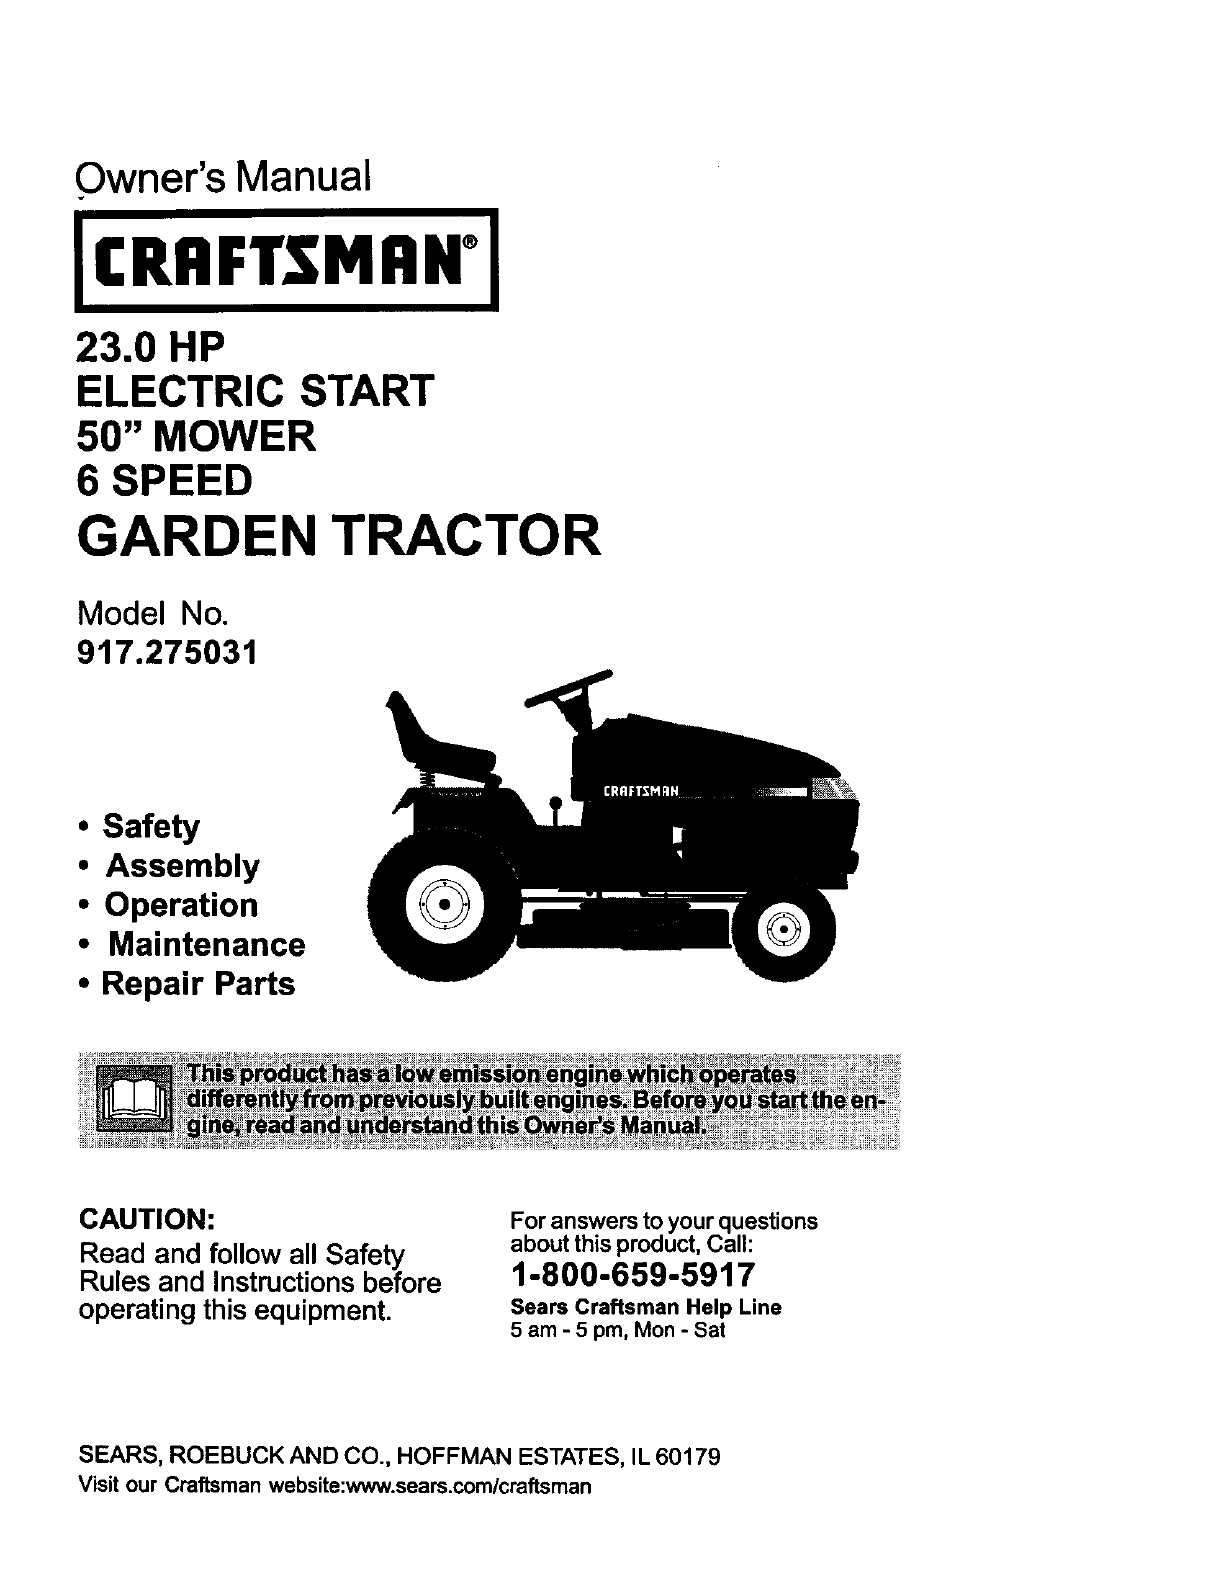 Hood Diagram And Parts List For Craftsman Ridingmowertractorparts